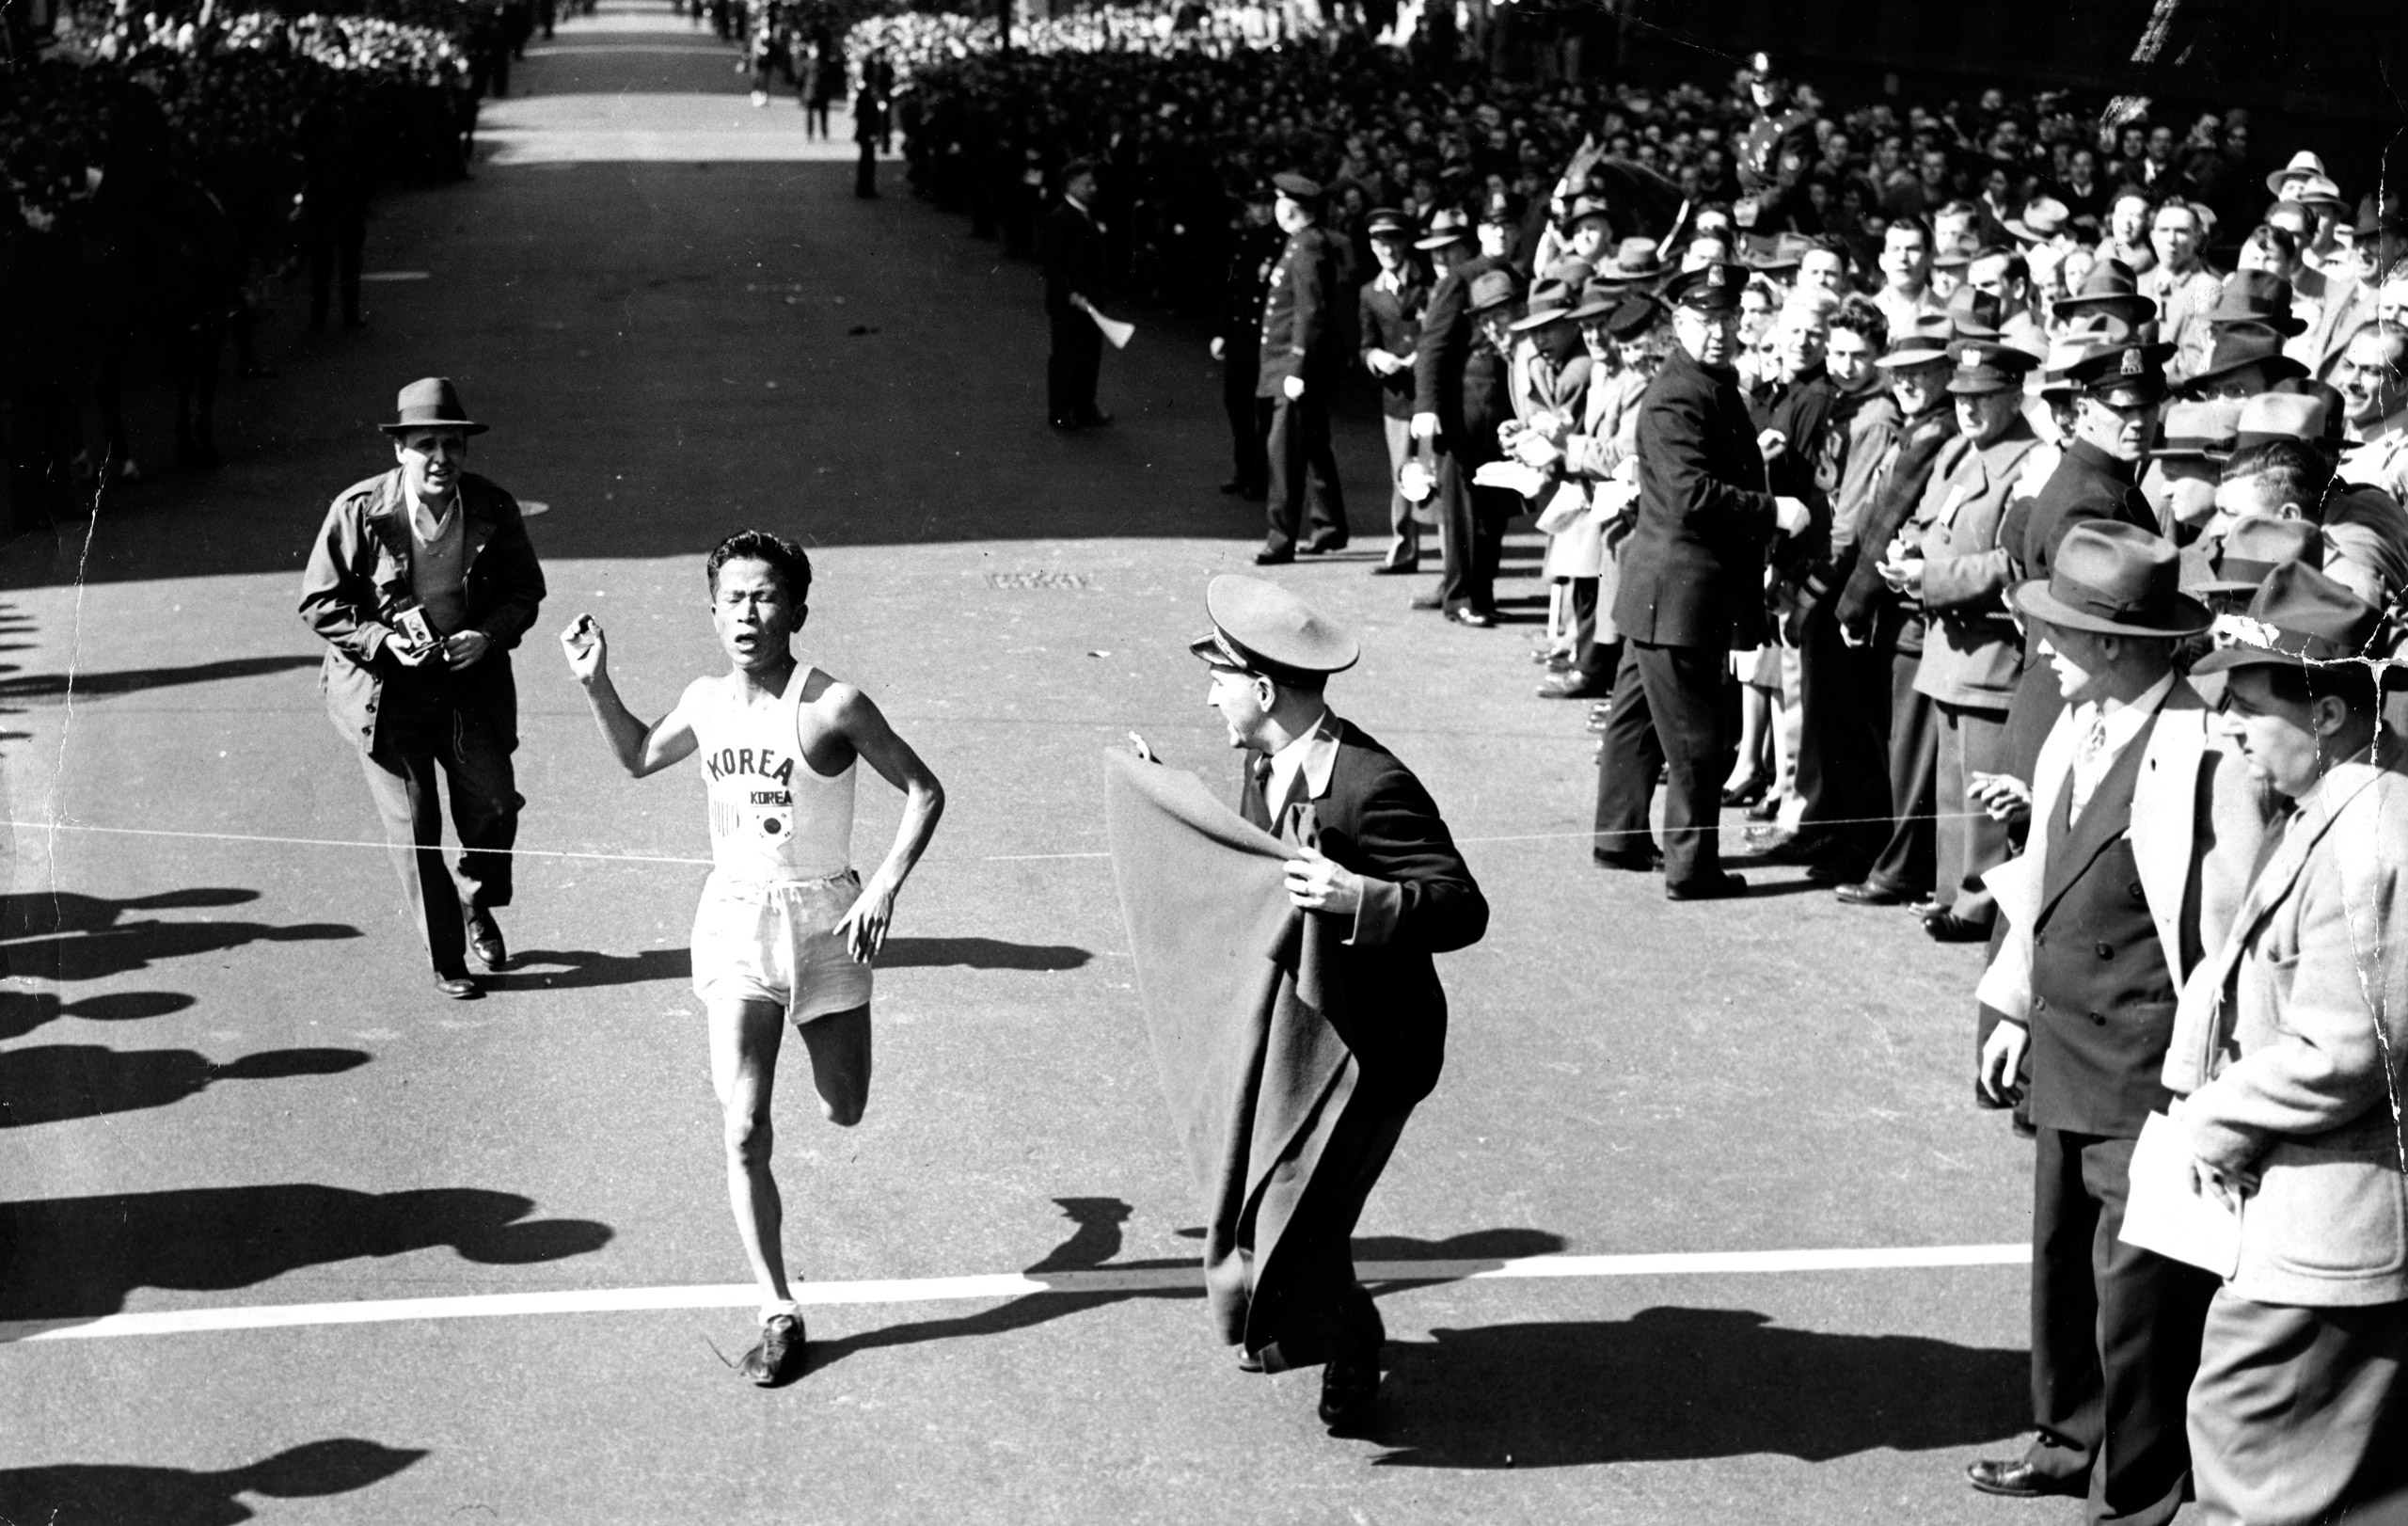 Suh Yun-bok, 24, of South Korea, crosses the finish line, setting a new record in the Boston Marathon, 1947.